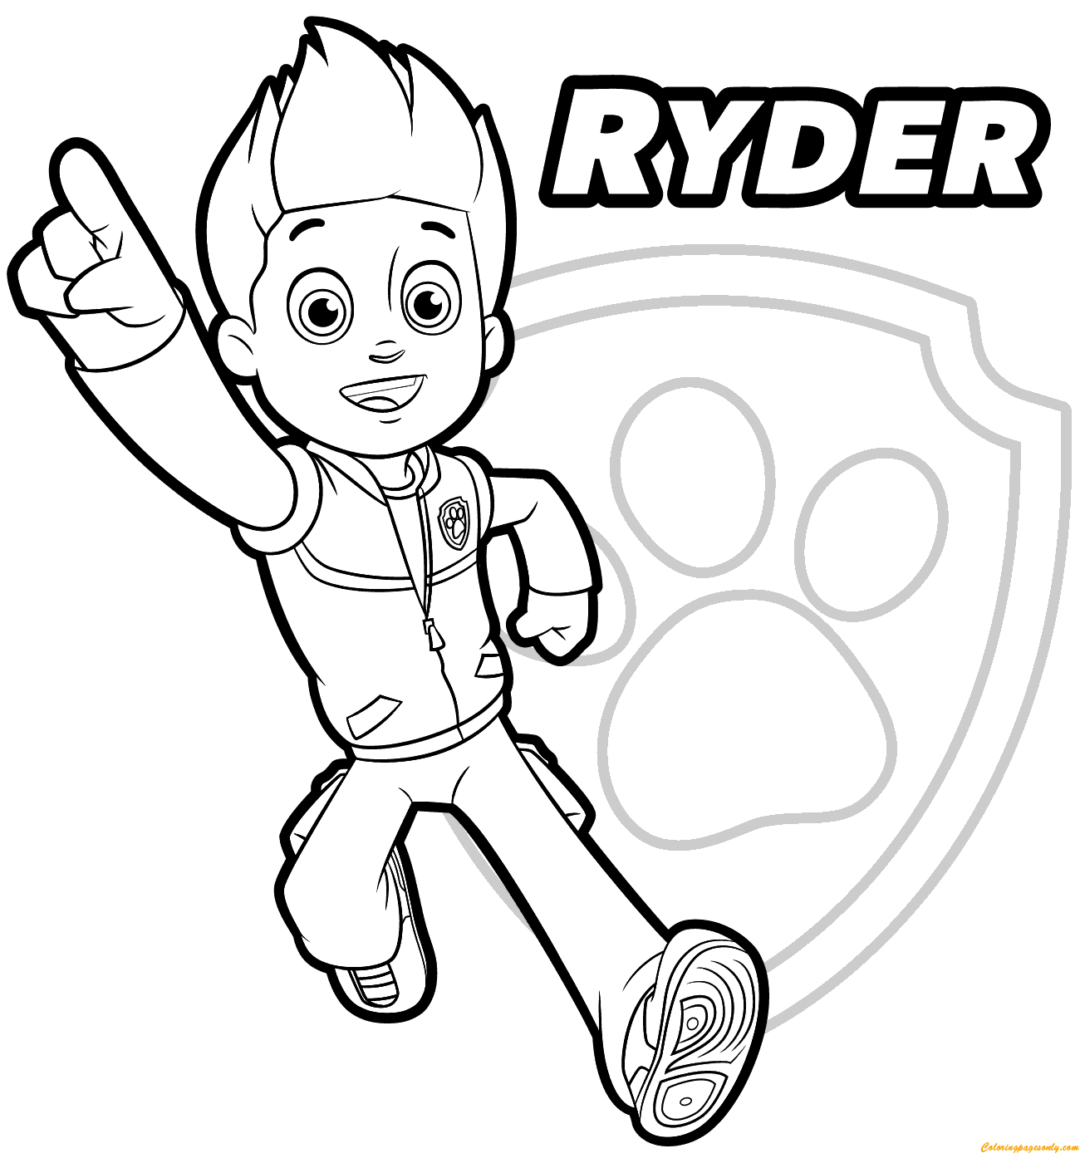 Coloring Rocks Paw Patrol Coloring Pages Paw Patrol Coloring Ryder Paw Patrol